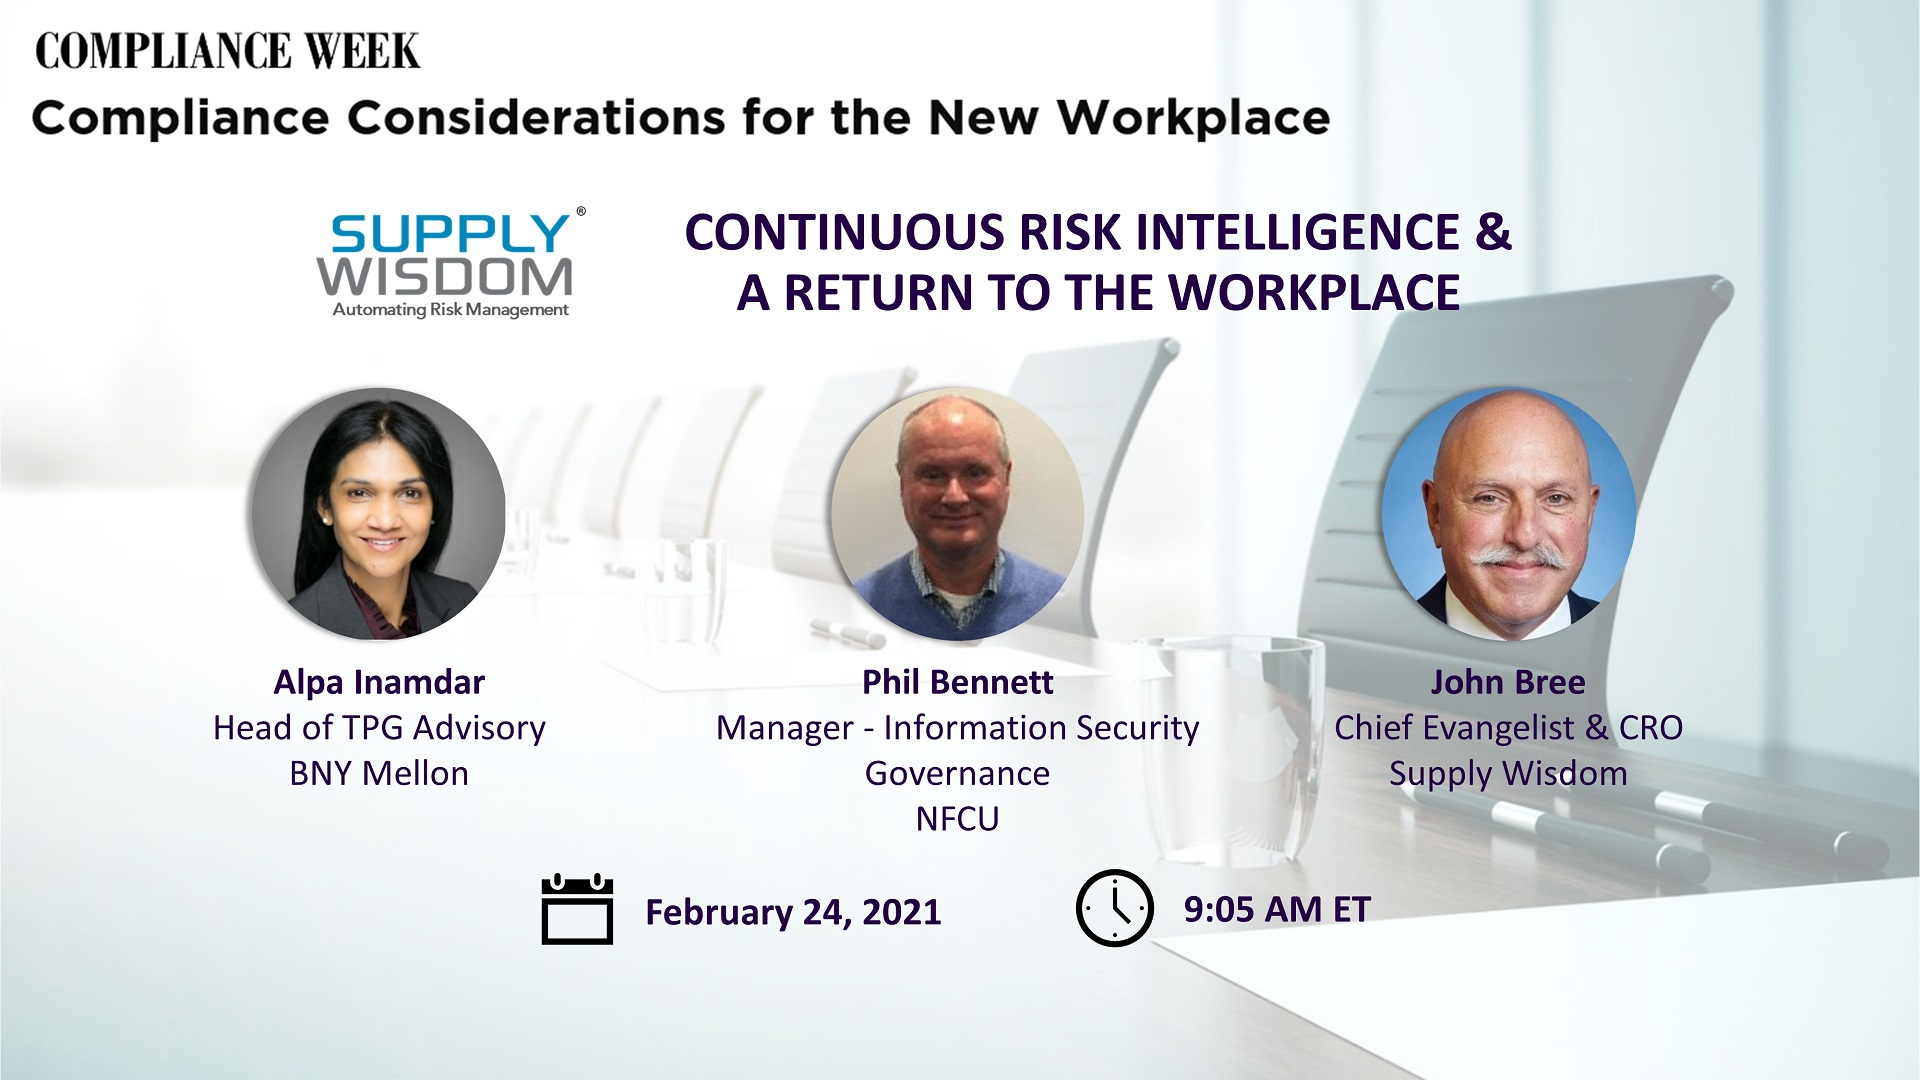 Supply Wisdom presents keynote on Continuous Risk Intelligence at Compliance Week event